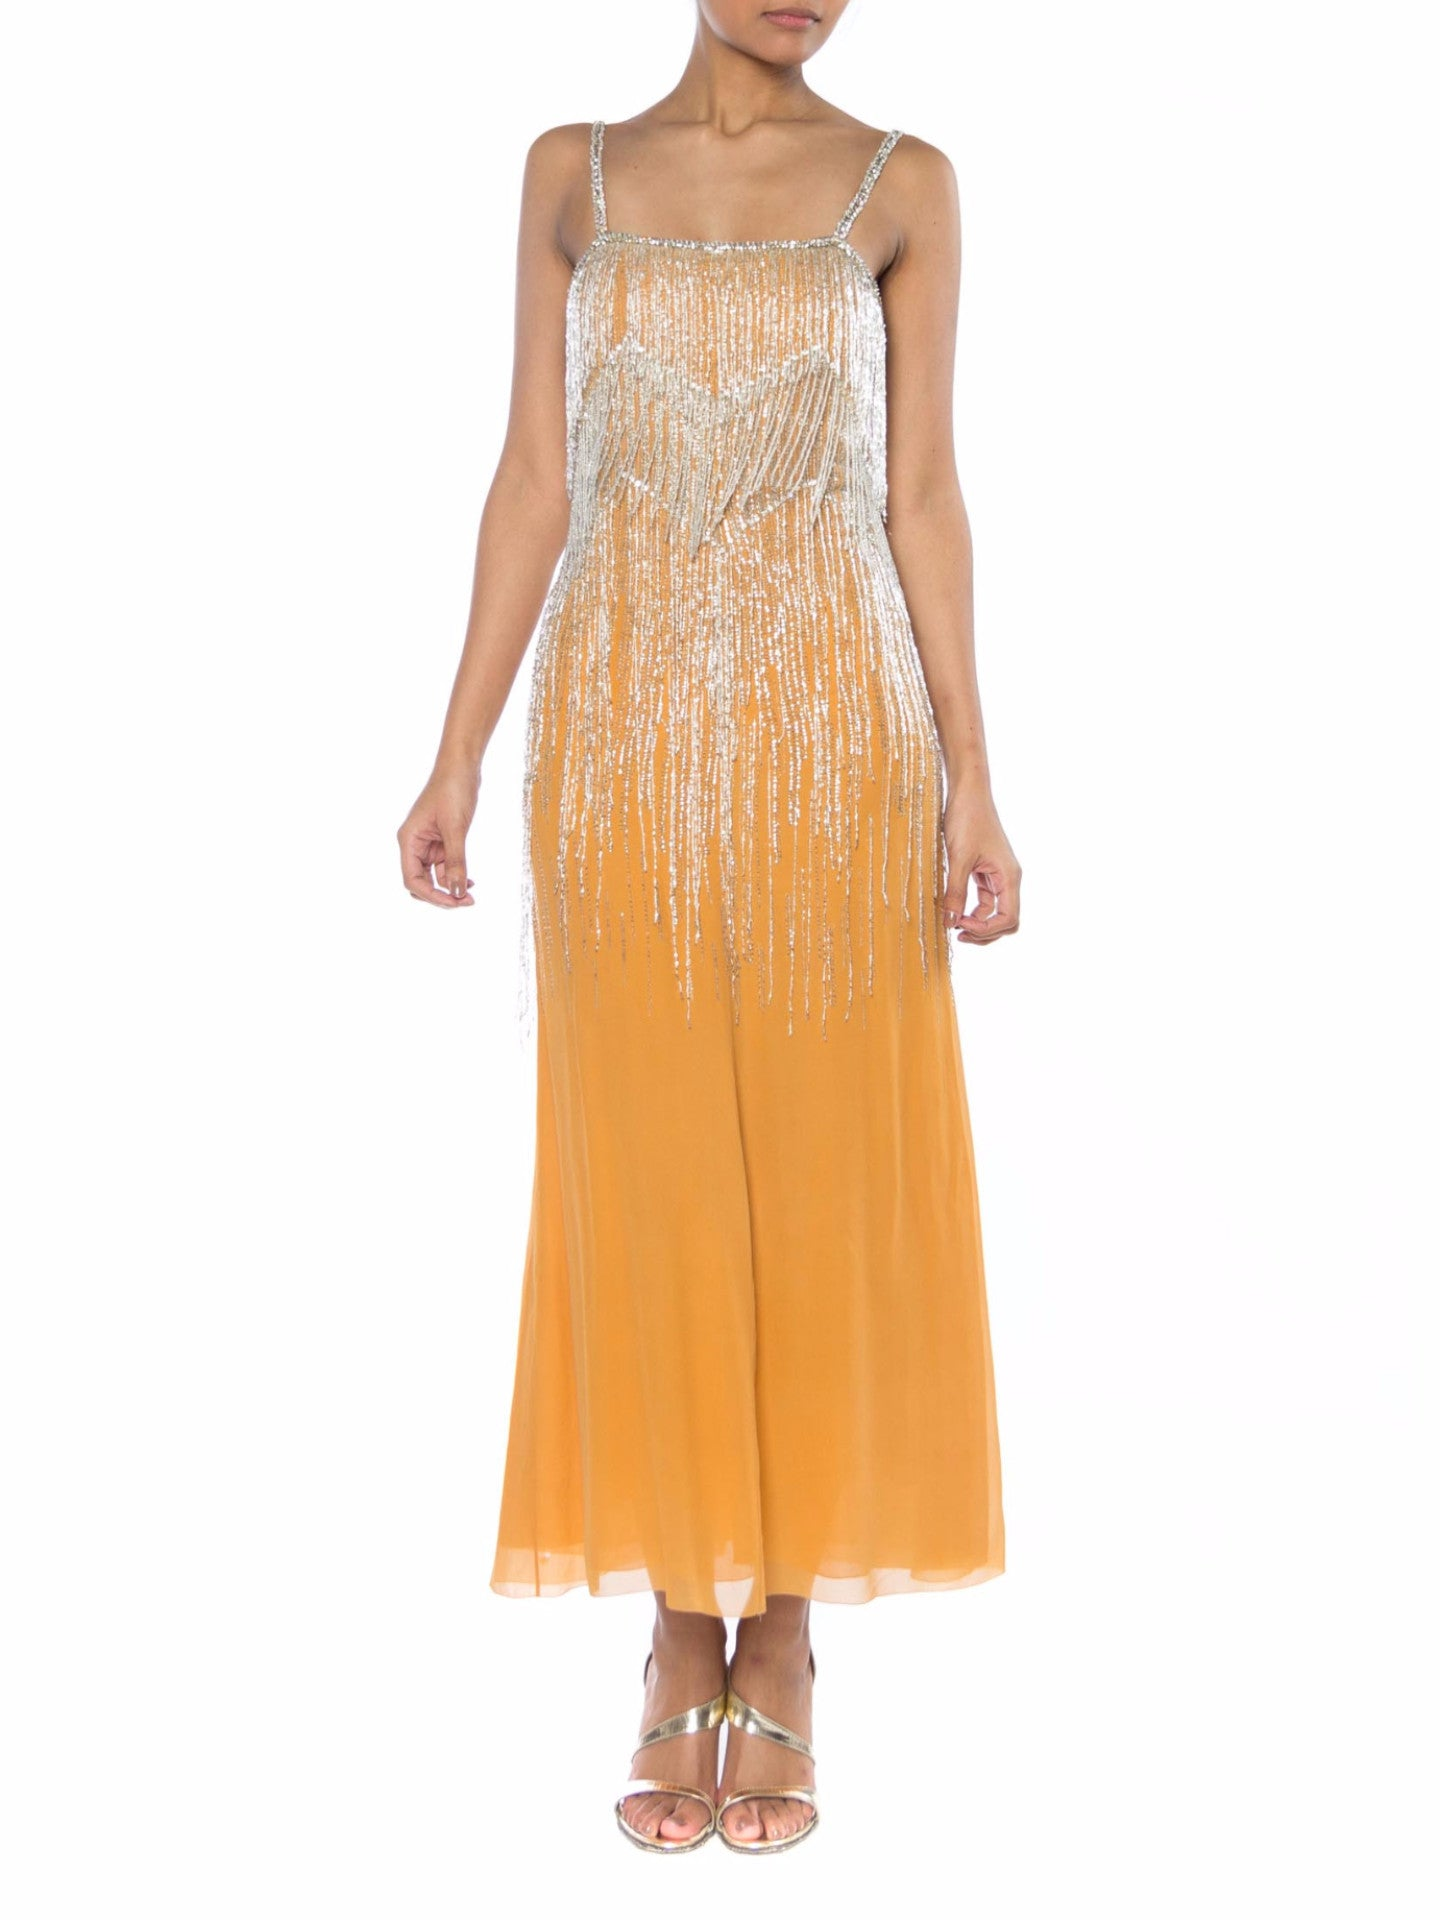 1970S CHRISTIAN DIOR Haute Couture Silk Chiffon Crystal Beaded Fringe Cocktail Dress